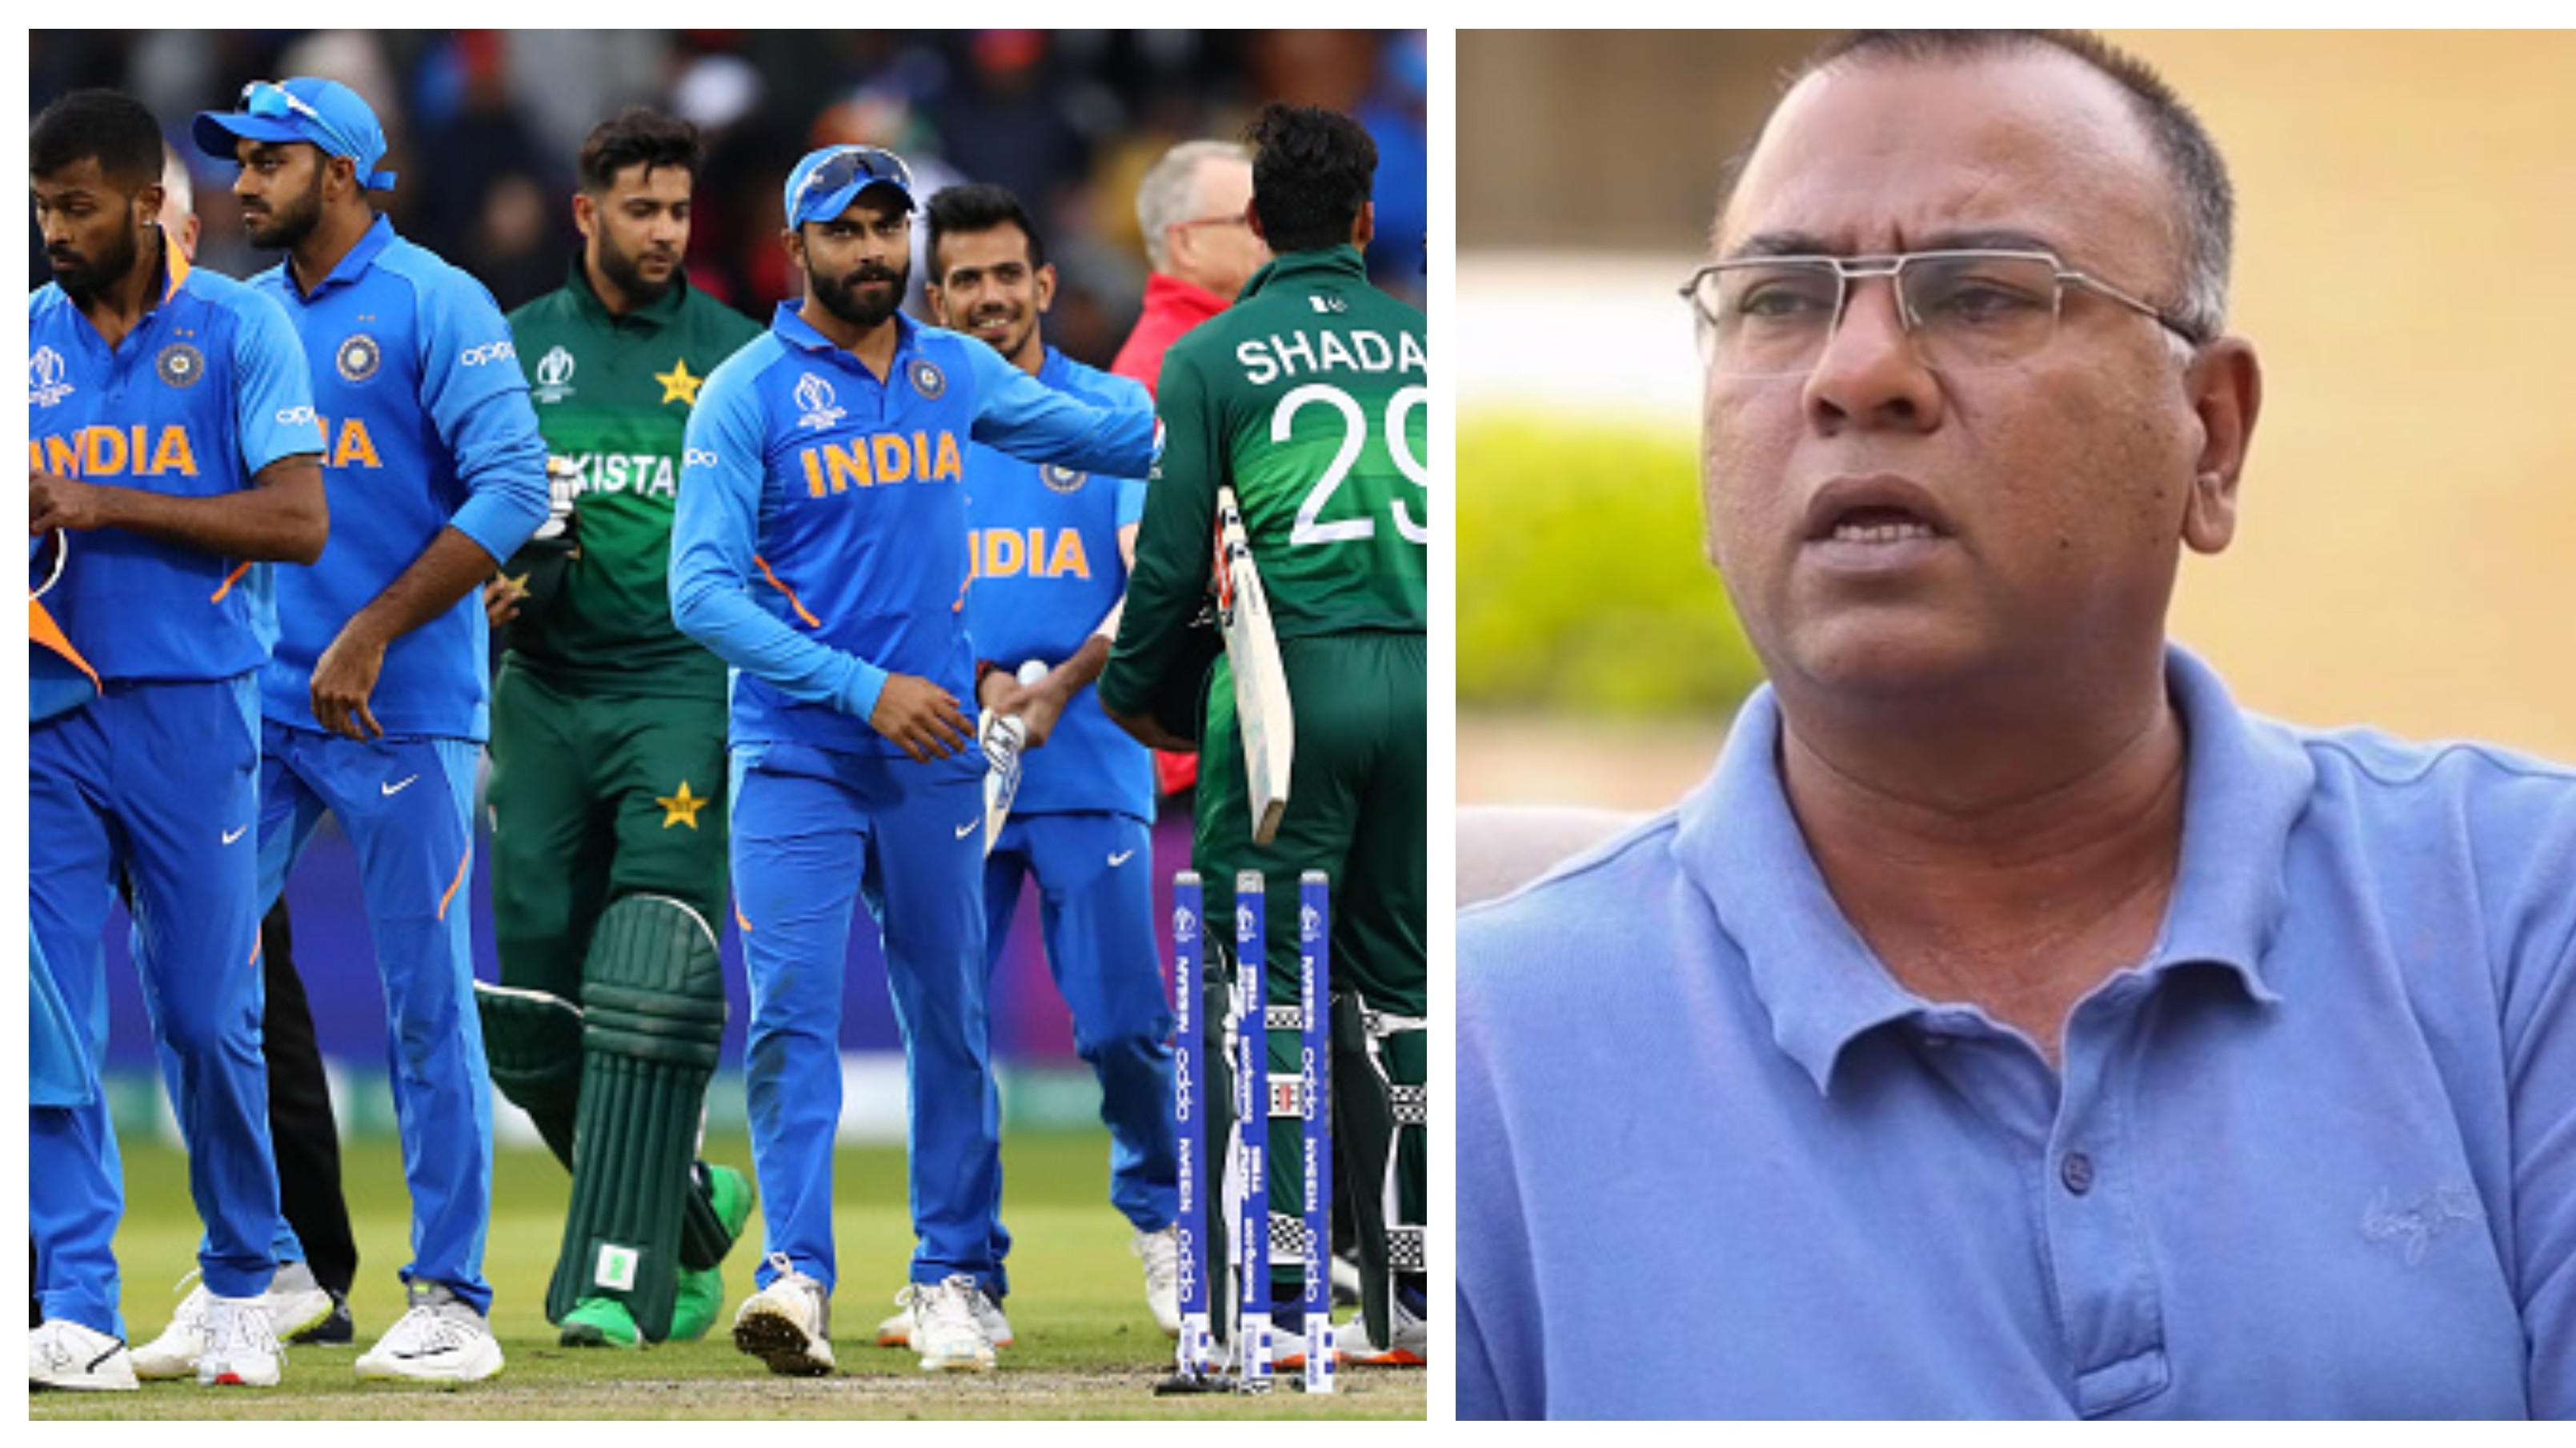 CWC 2019: WATCH – India will deliberately lose to SL and BAN to oust Pakistan from the World Cup, says Basit Ali